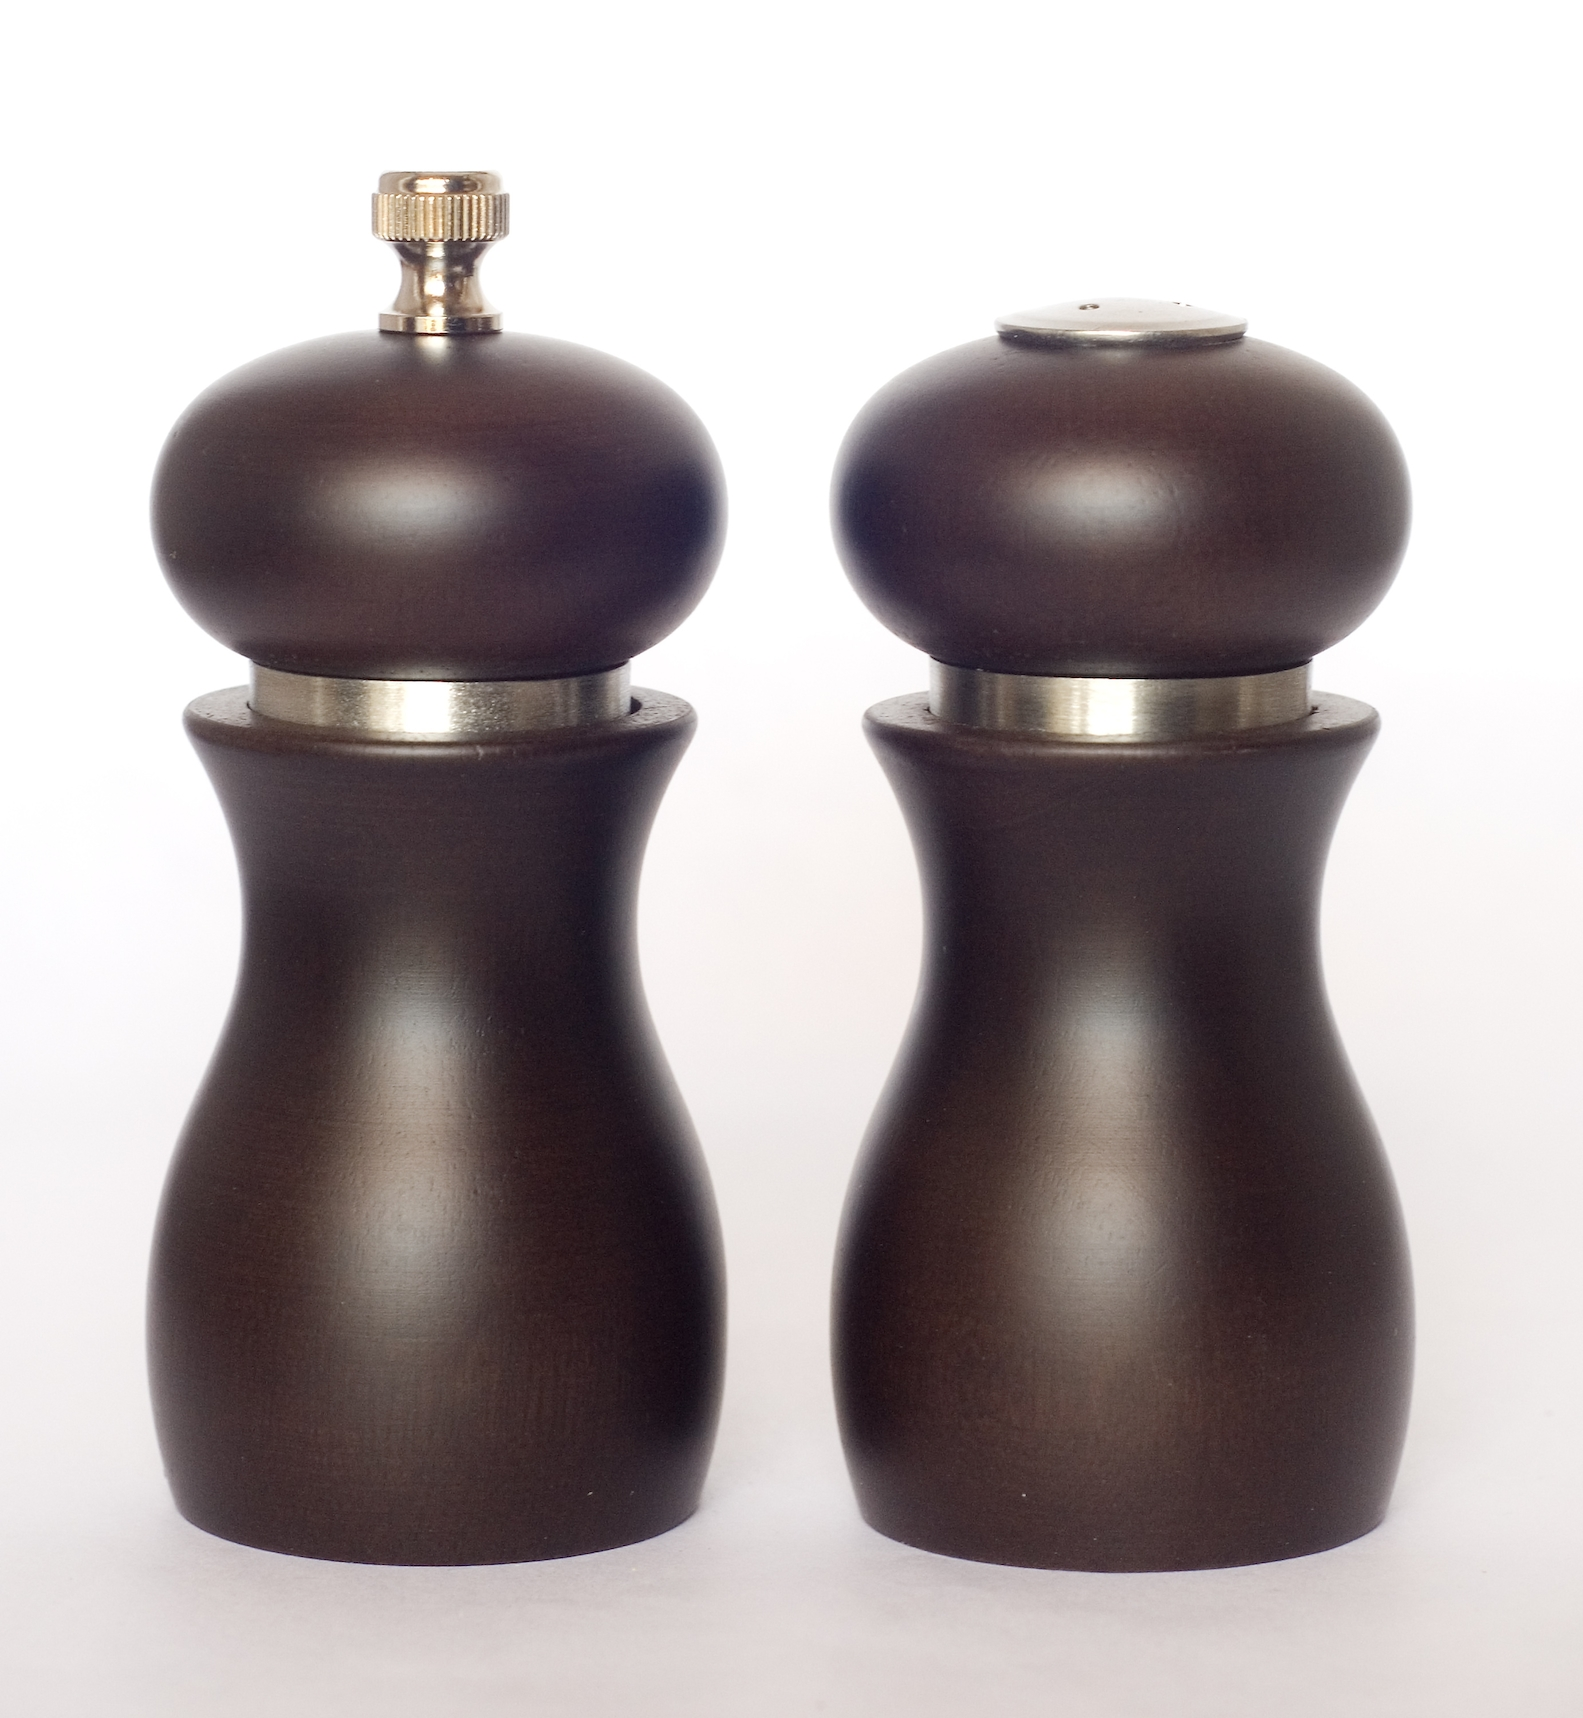 Capri Dark Brown pepper mill and salt shaker set